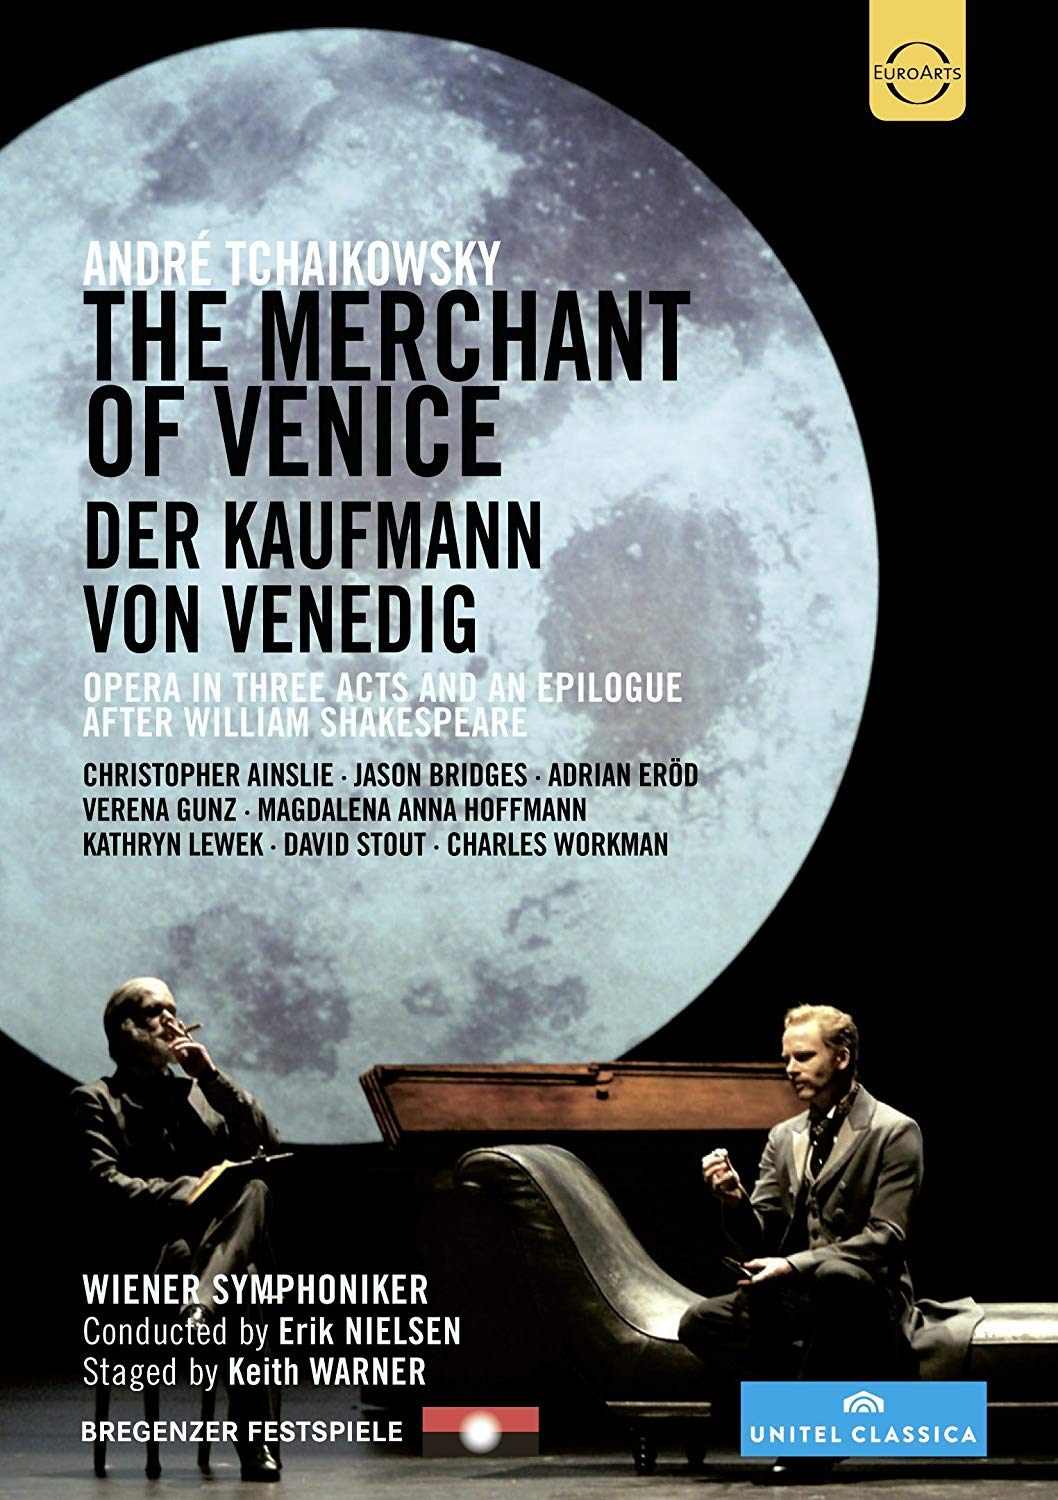 Tchaikowsky: The Merchant of Venice